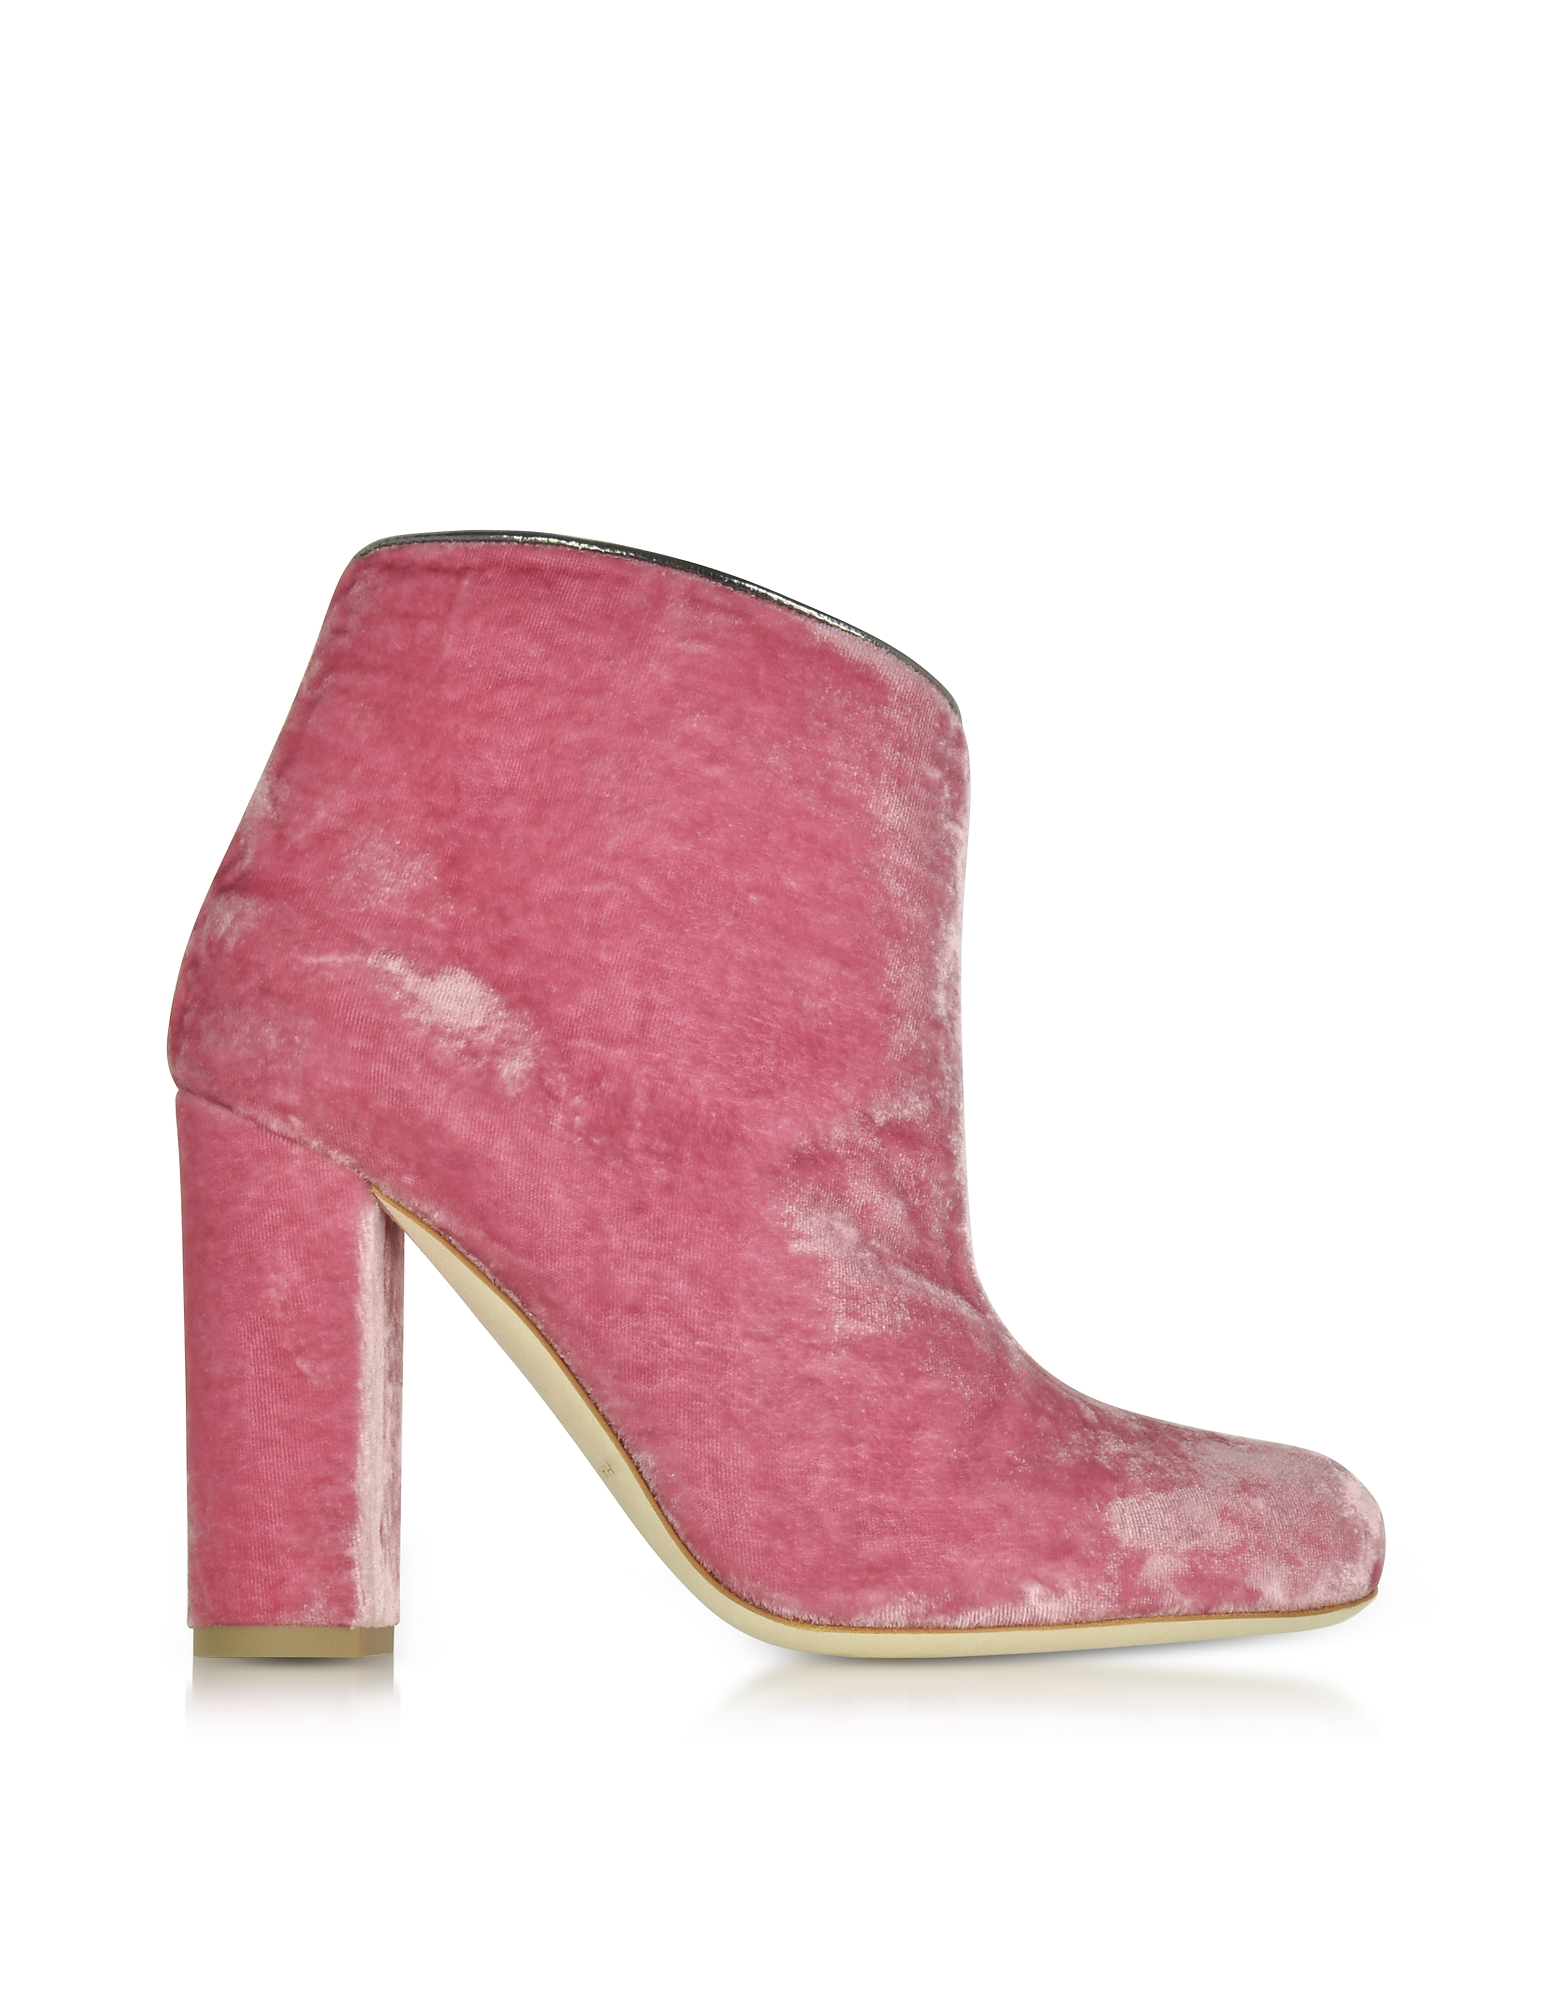 Malone Souliers Shoes, Eula Pink and Charcoal Velvet Ankle Boots